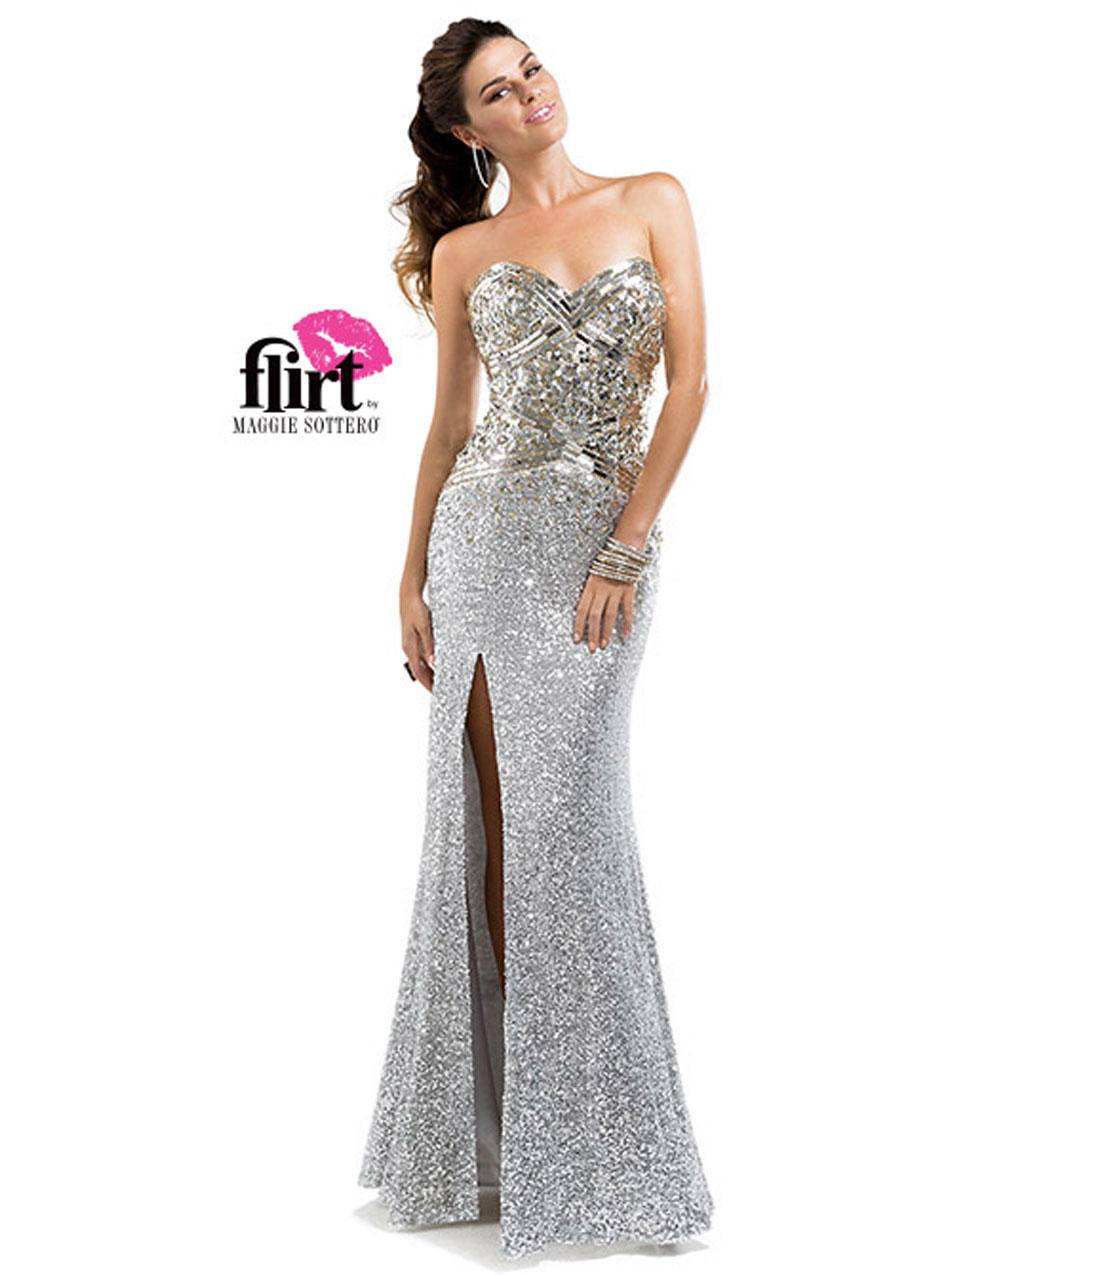 flirt prom dress uk Our pleasure to supply dreamy prom dress flirt to all of beautiful girls and ladies cocomelody are selling prom dress flirt at a loss you will not get cheaper ones.